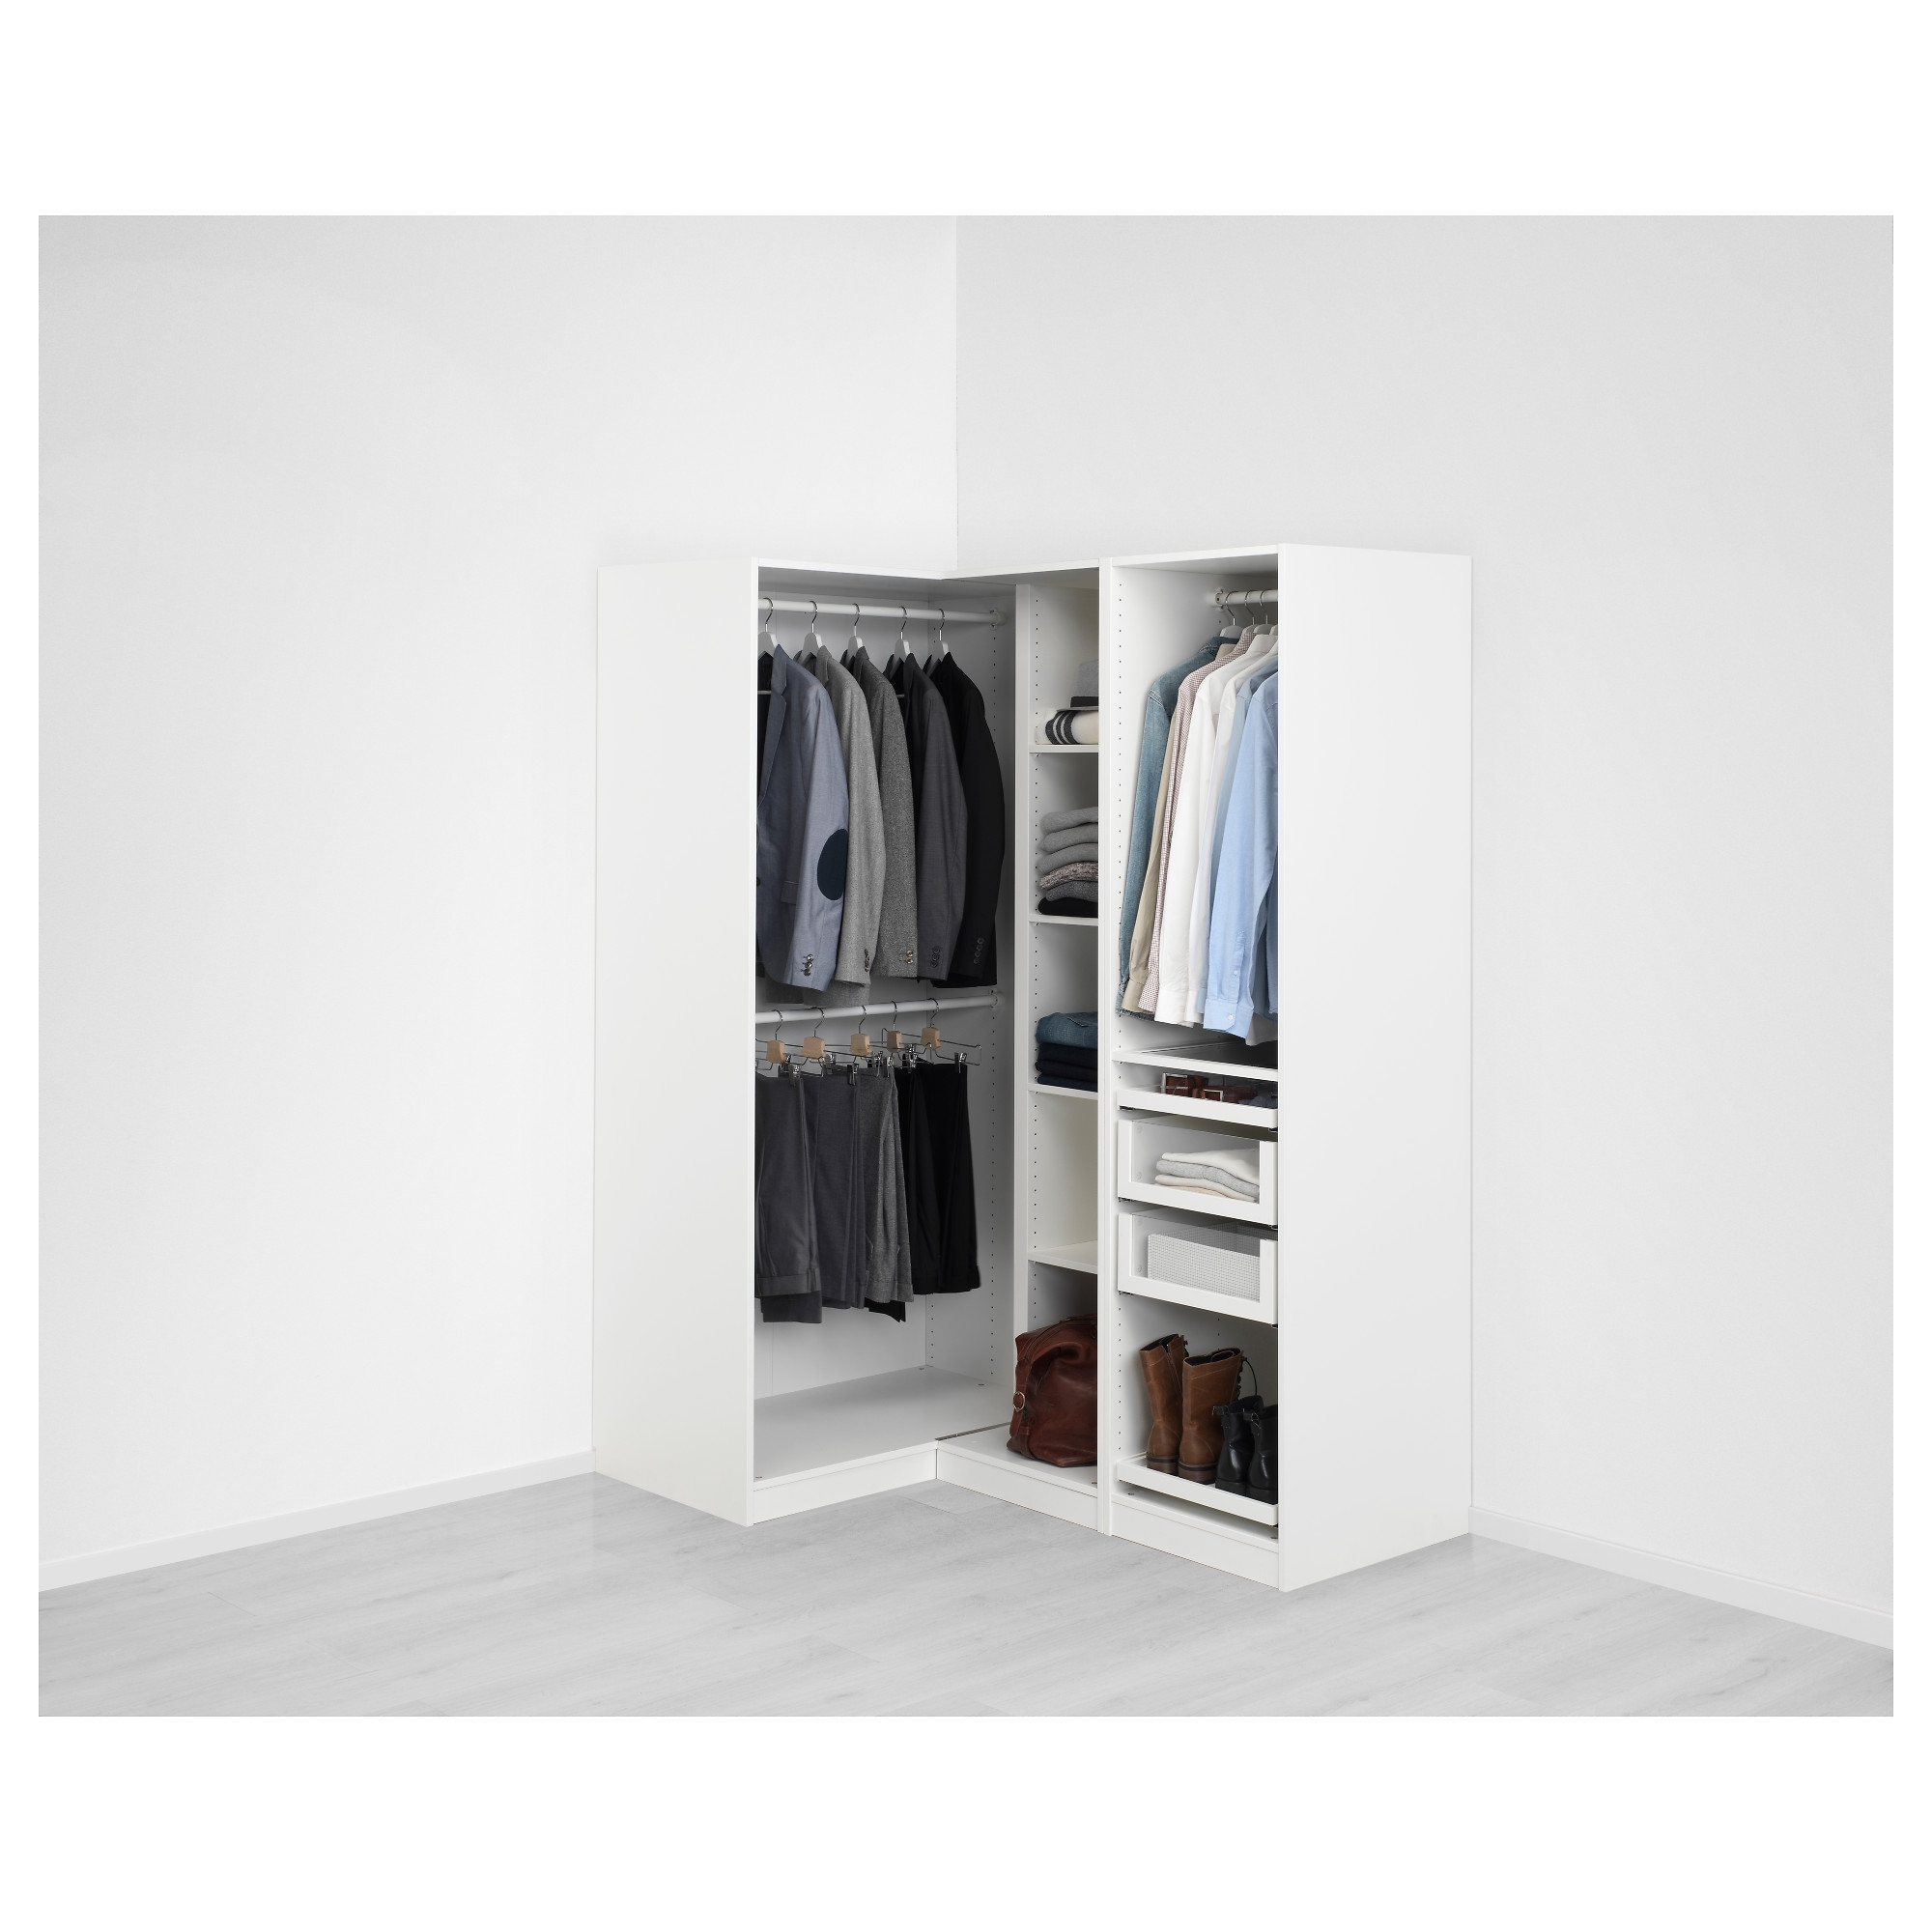 francisco fab blogger closets review san what wardrobe pax by closet ikea lifestyle custom popular the wtfab